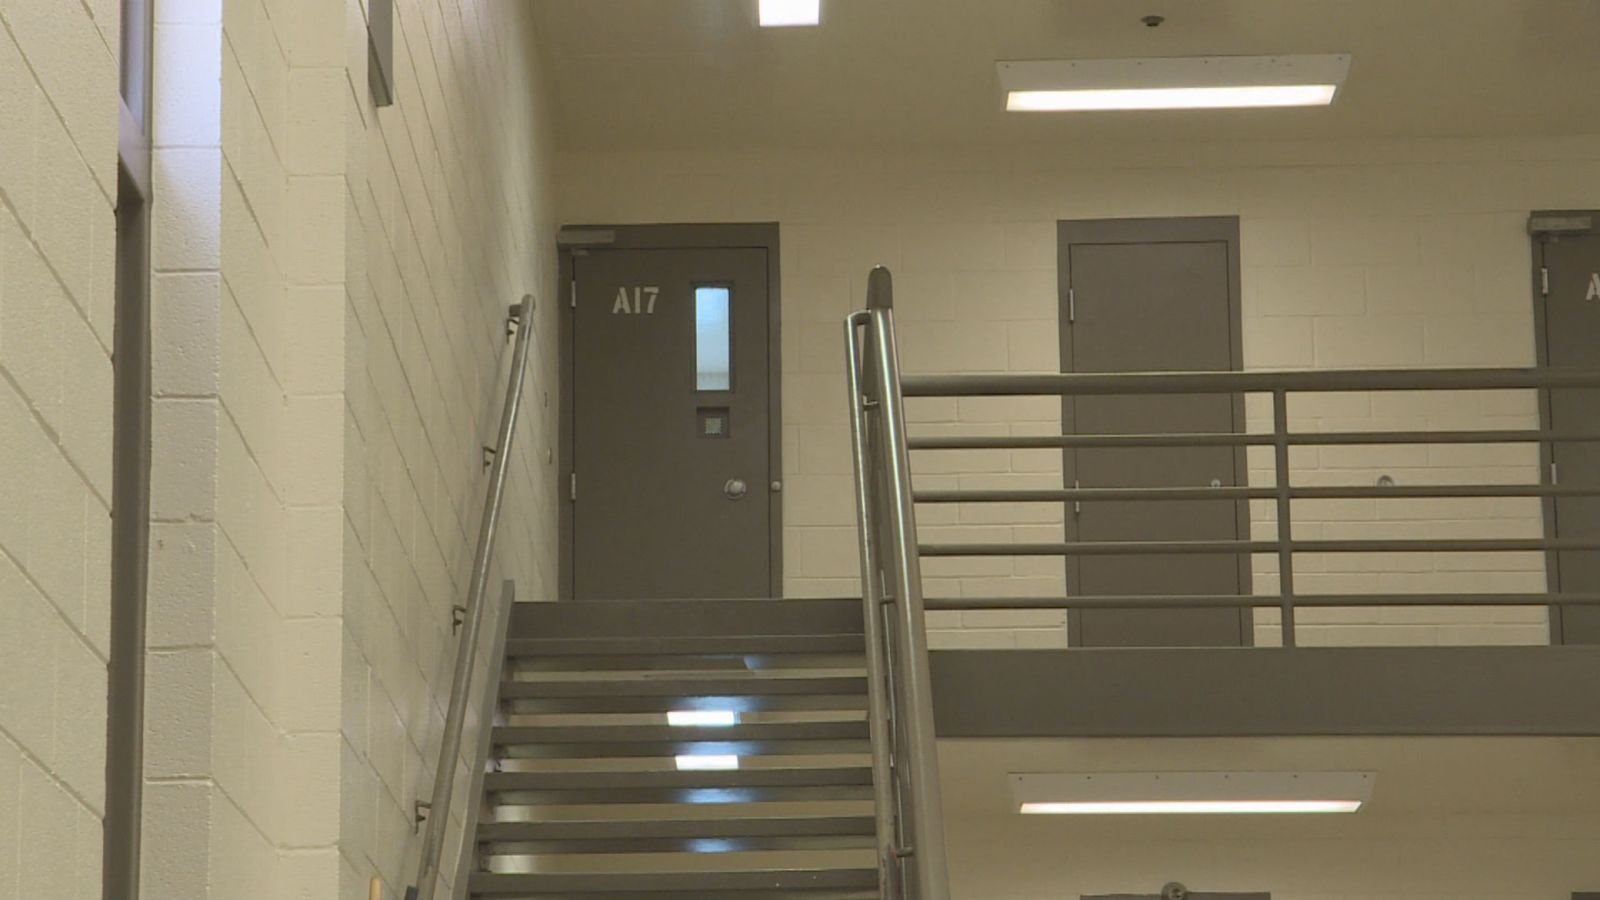 "A 36-year-old man died Tuesday while in the custody of the Davis County Sheriff's Office at the county jail, shown here.{&nbsp;}<a  href=""https://kutv.com/news/local/davis-county-making-policy-changes-after-string-of-jail-deaths"" target=""_blank"" title=""https://kutv.com/news/local/davis-county-making-policy-changes-after-string-of-jail-deaths"">It is the tenth death there since 2016</a>. (File photo: KUTV)"